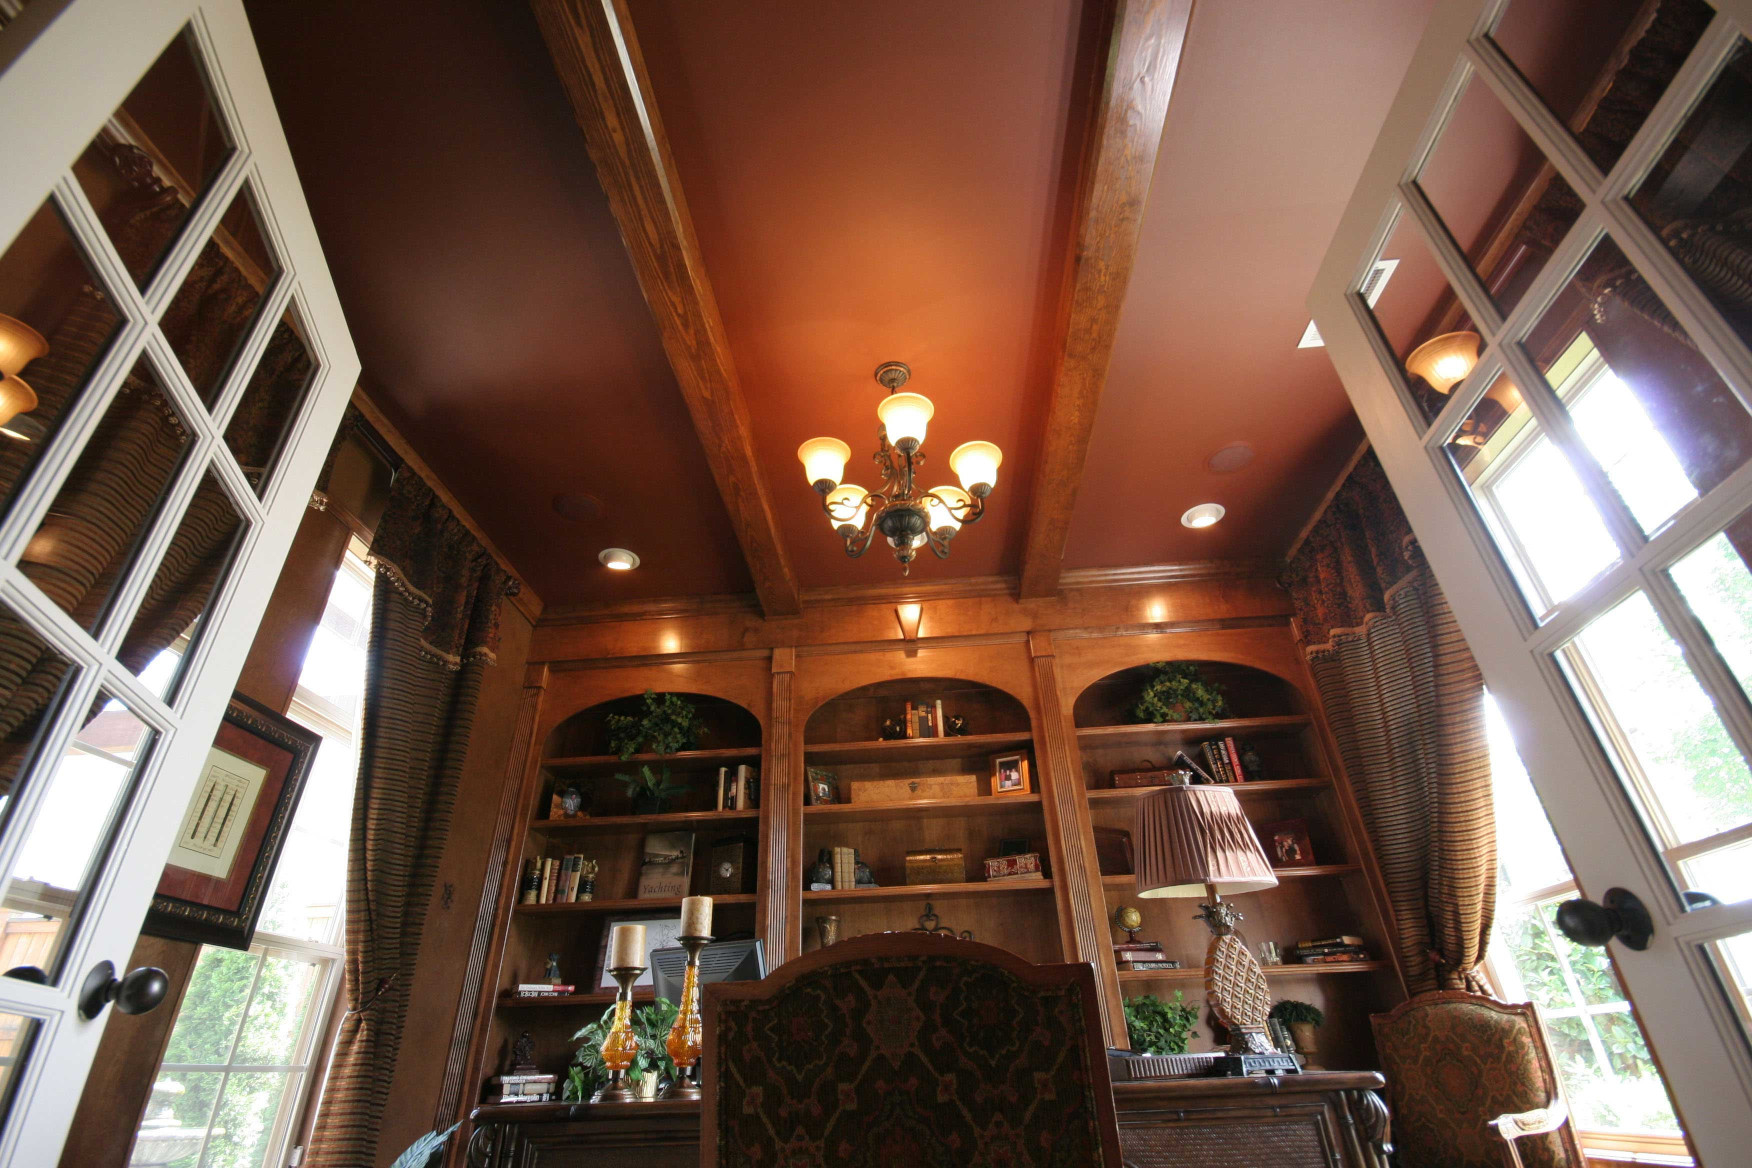 The wood beams in this study add elegance to this at home office space.